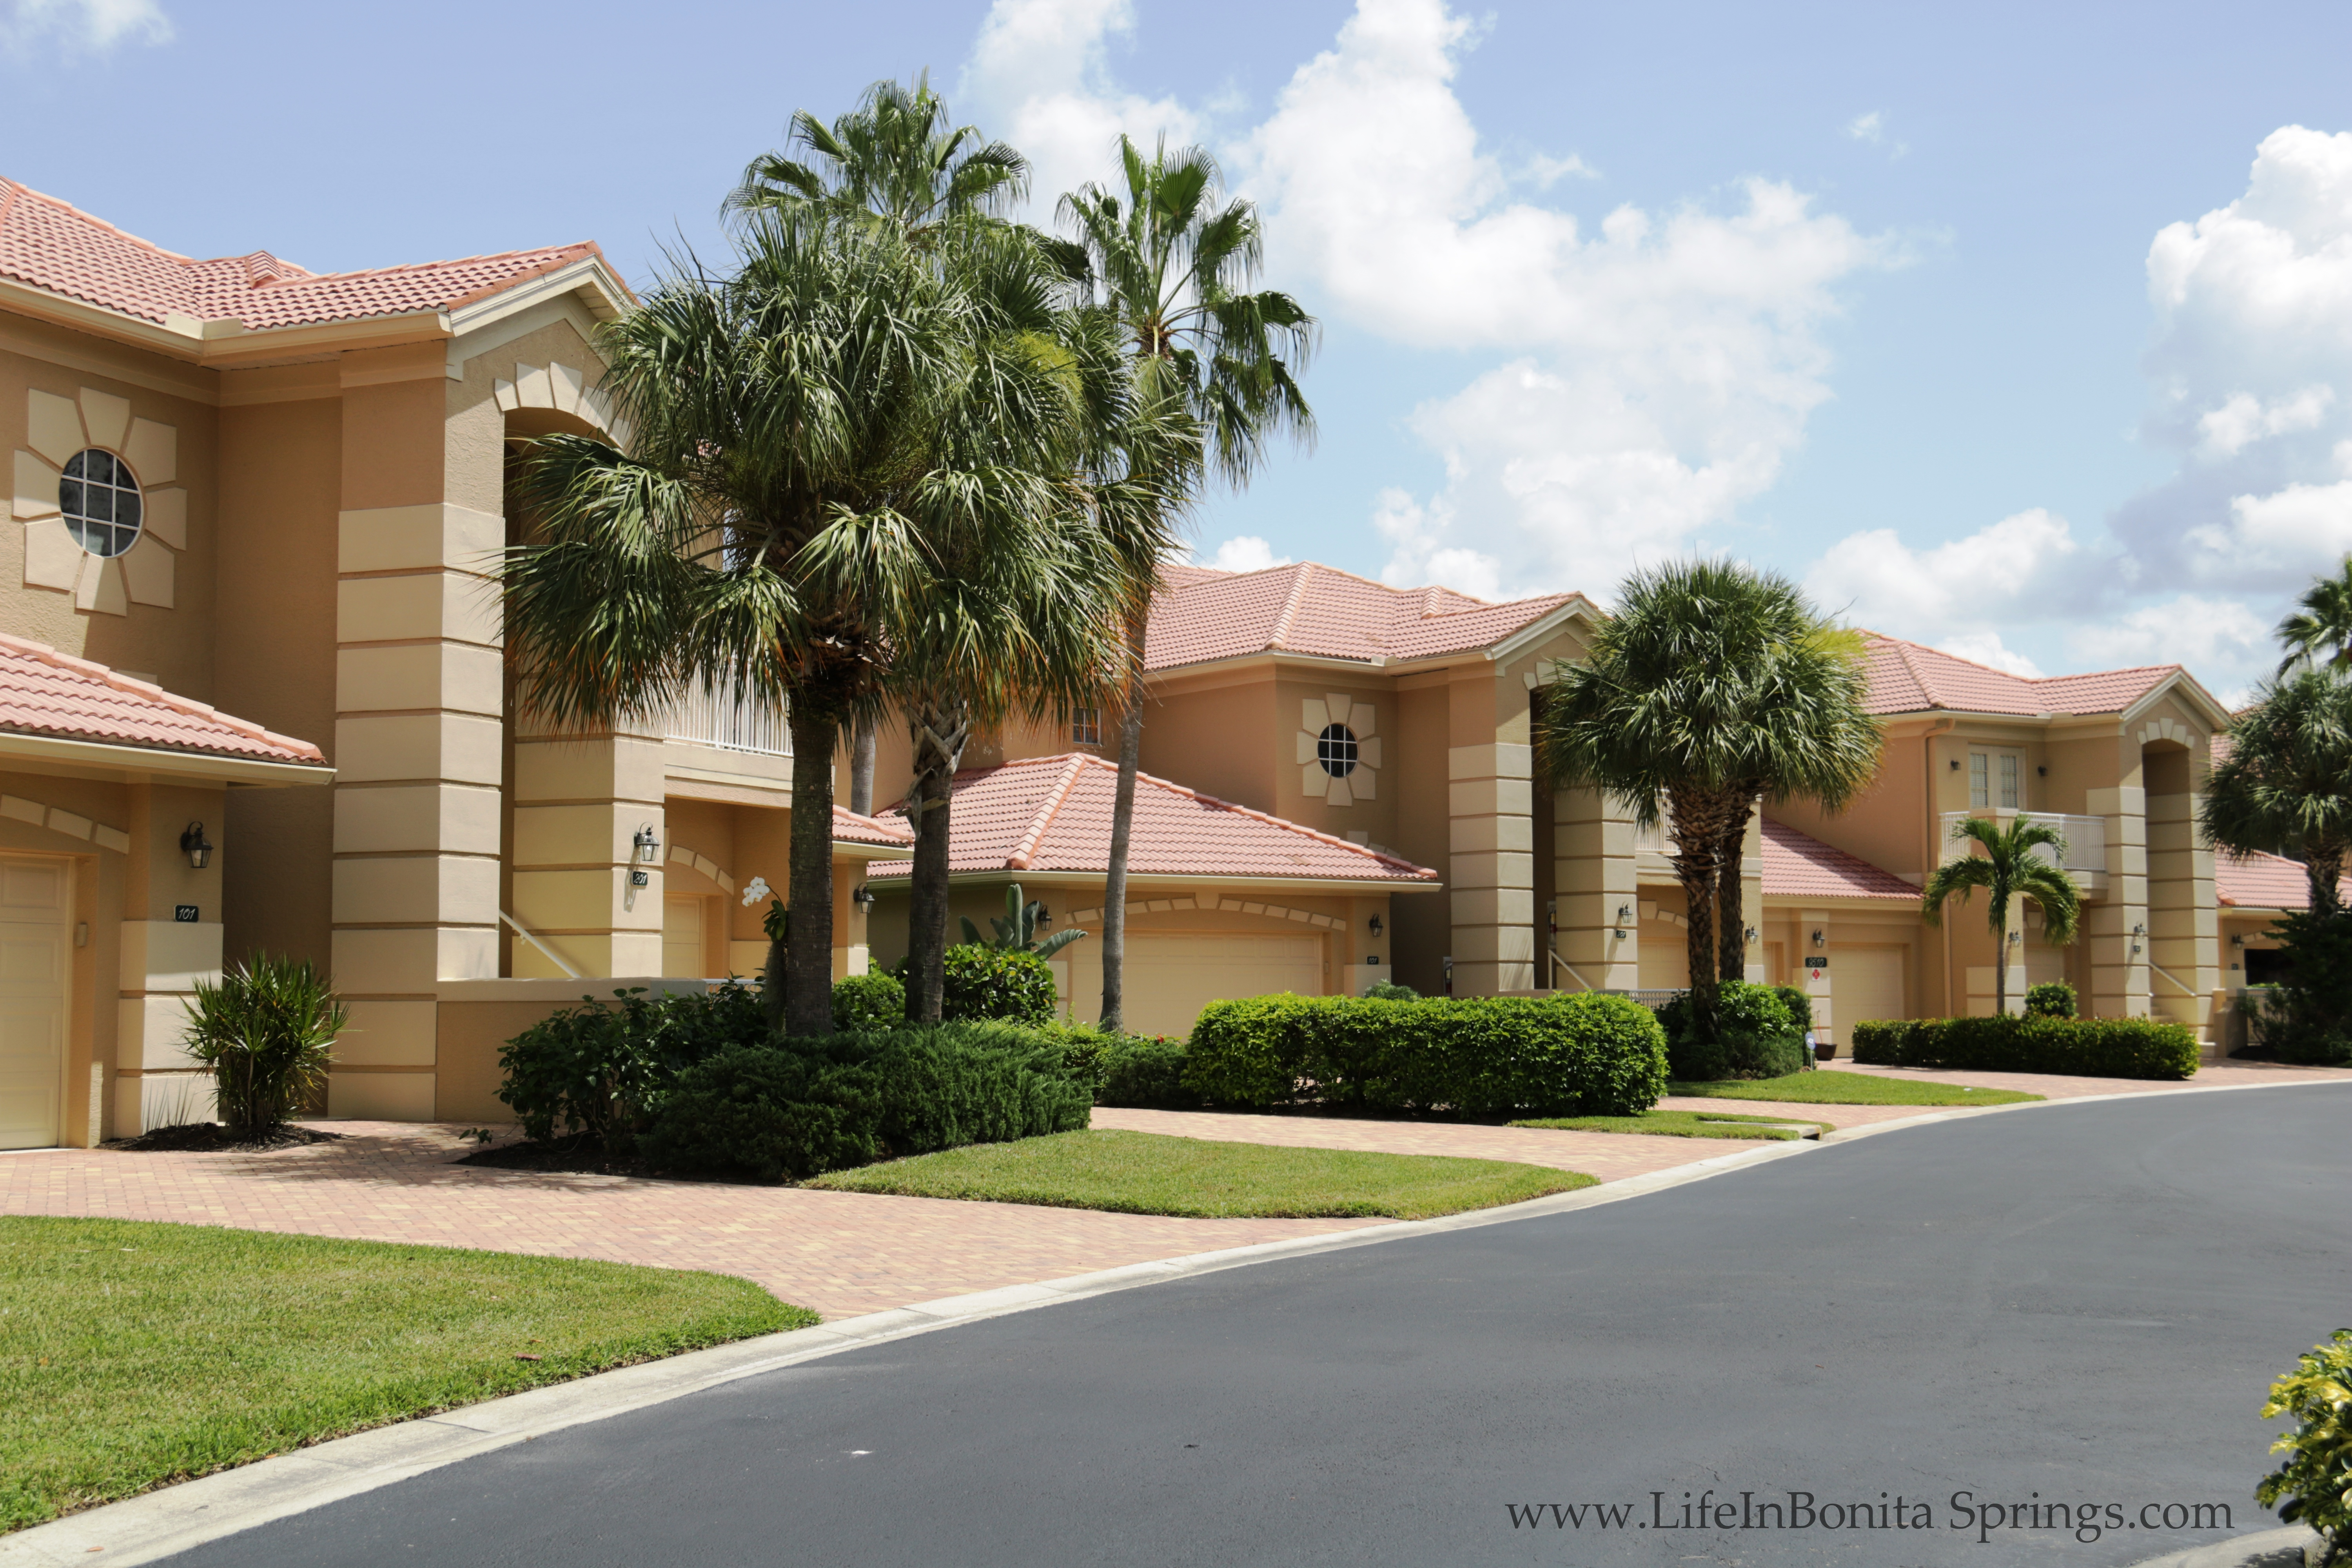 Apartments For Sale In Bonita Springs Fl